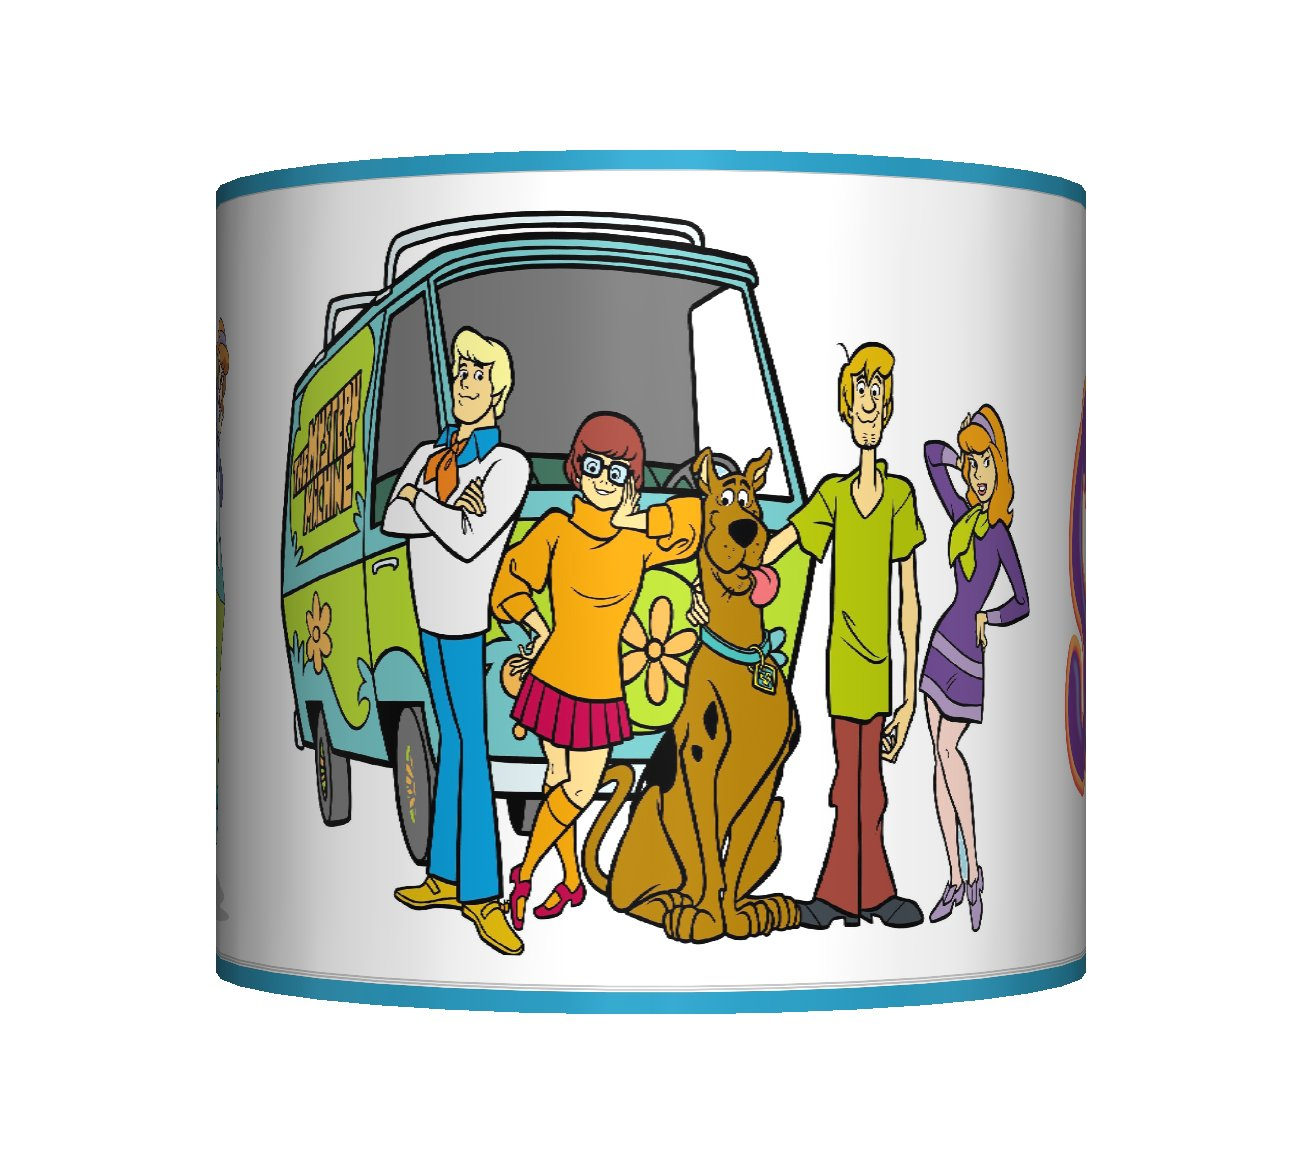 Scooby Doo Bedroom Accessories Scooby Doo Bedside Lamp Boys Bedroom Light Lamp Shade